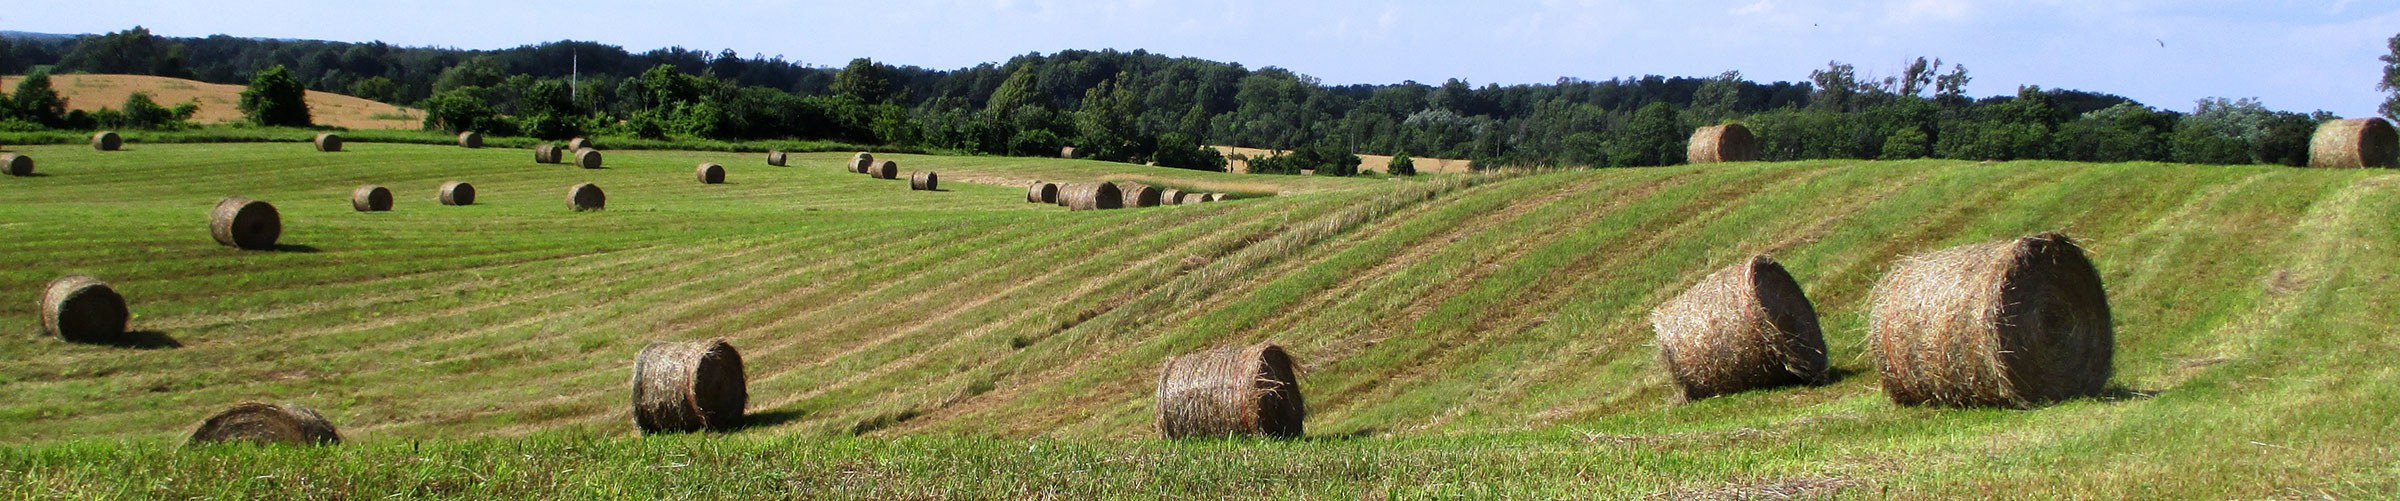 Panoramic view of Scotsdale's hay fields at harvest time